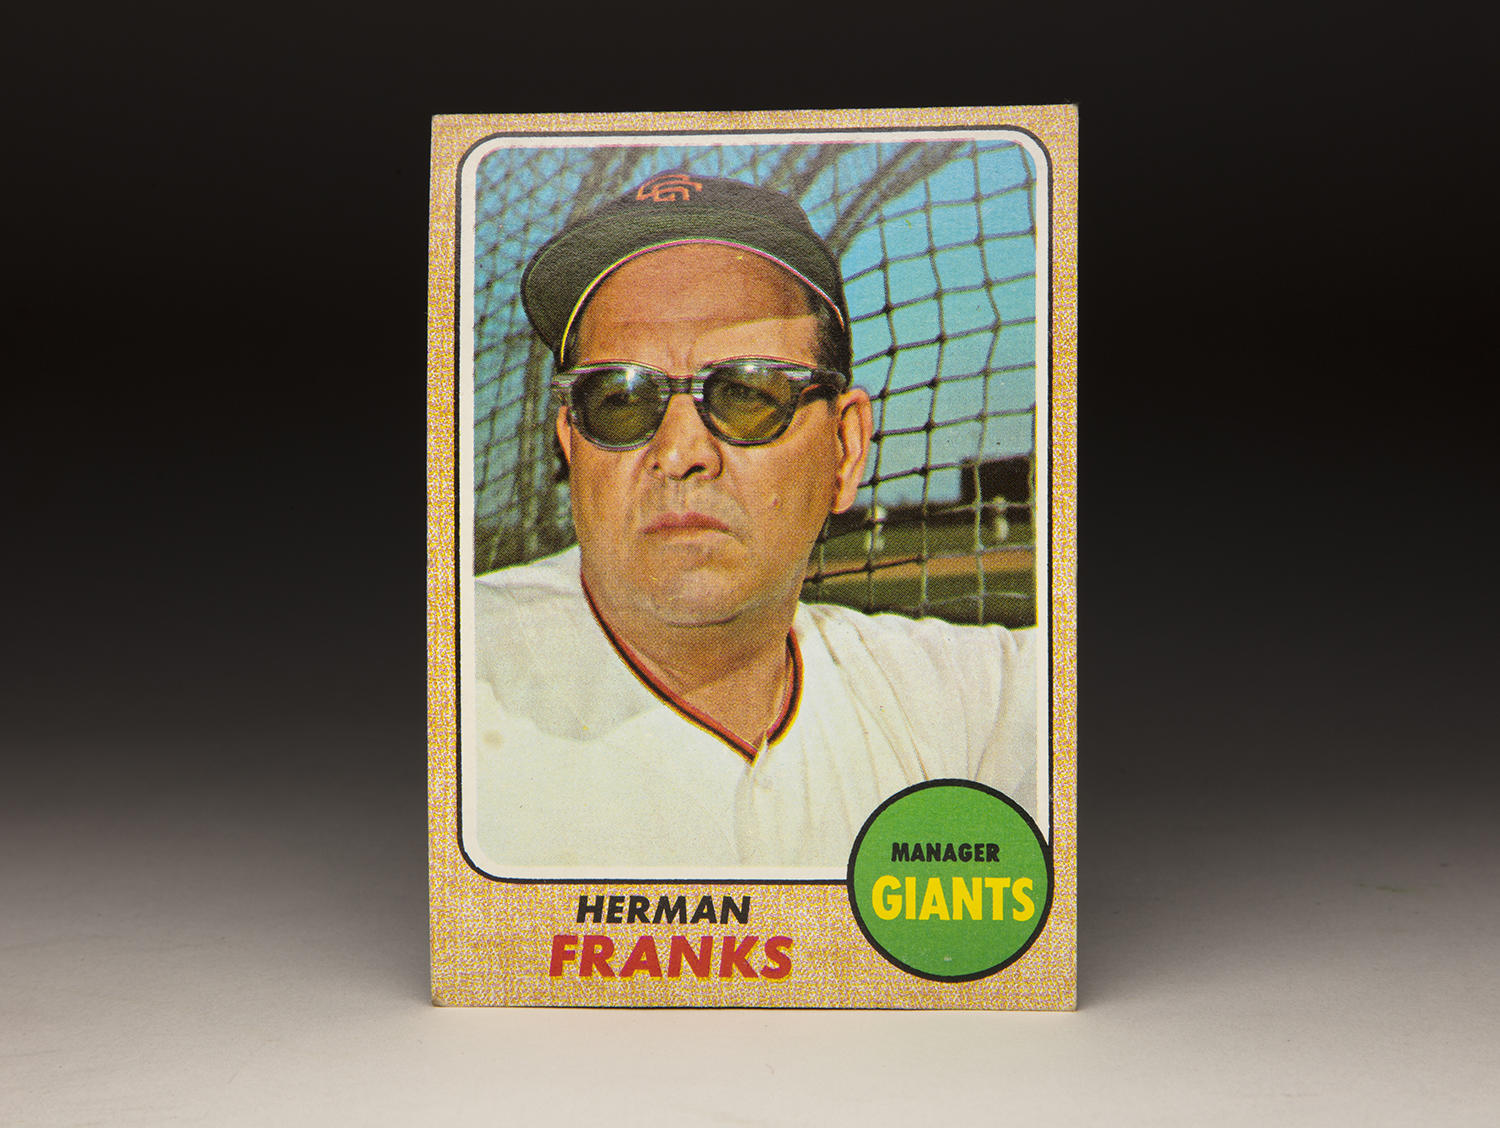 Although cards that show ballplayers or managers wearing sunglasses are rare, Herman Franks' 1968 Topps card provides an example of such. (Milo Stewart Jr./National Baseball Hall of Fame and Museum)